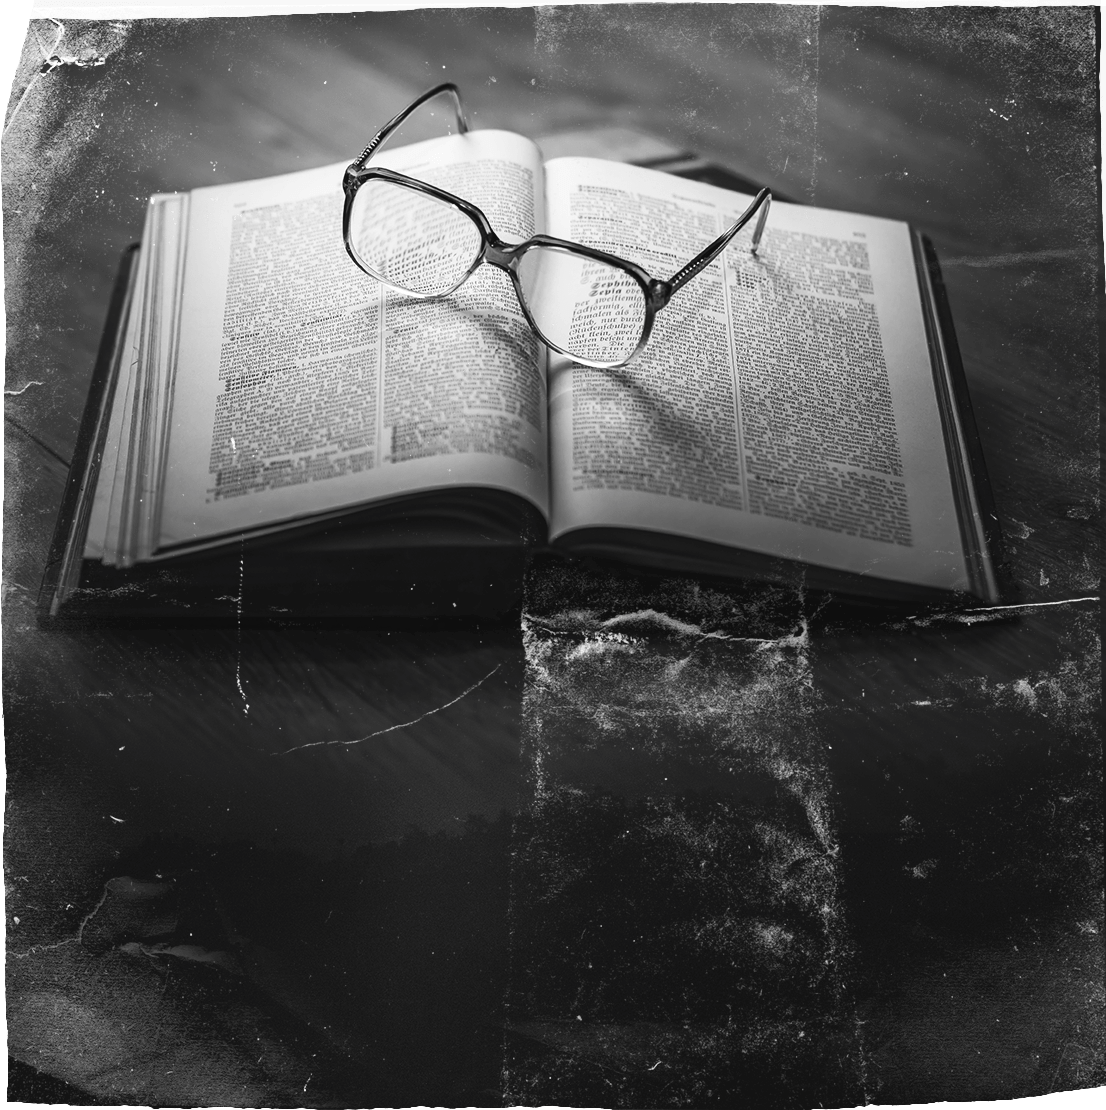 Reading Glasses on top of the Bible